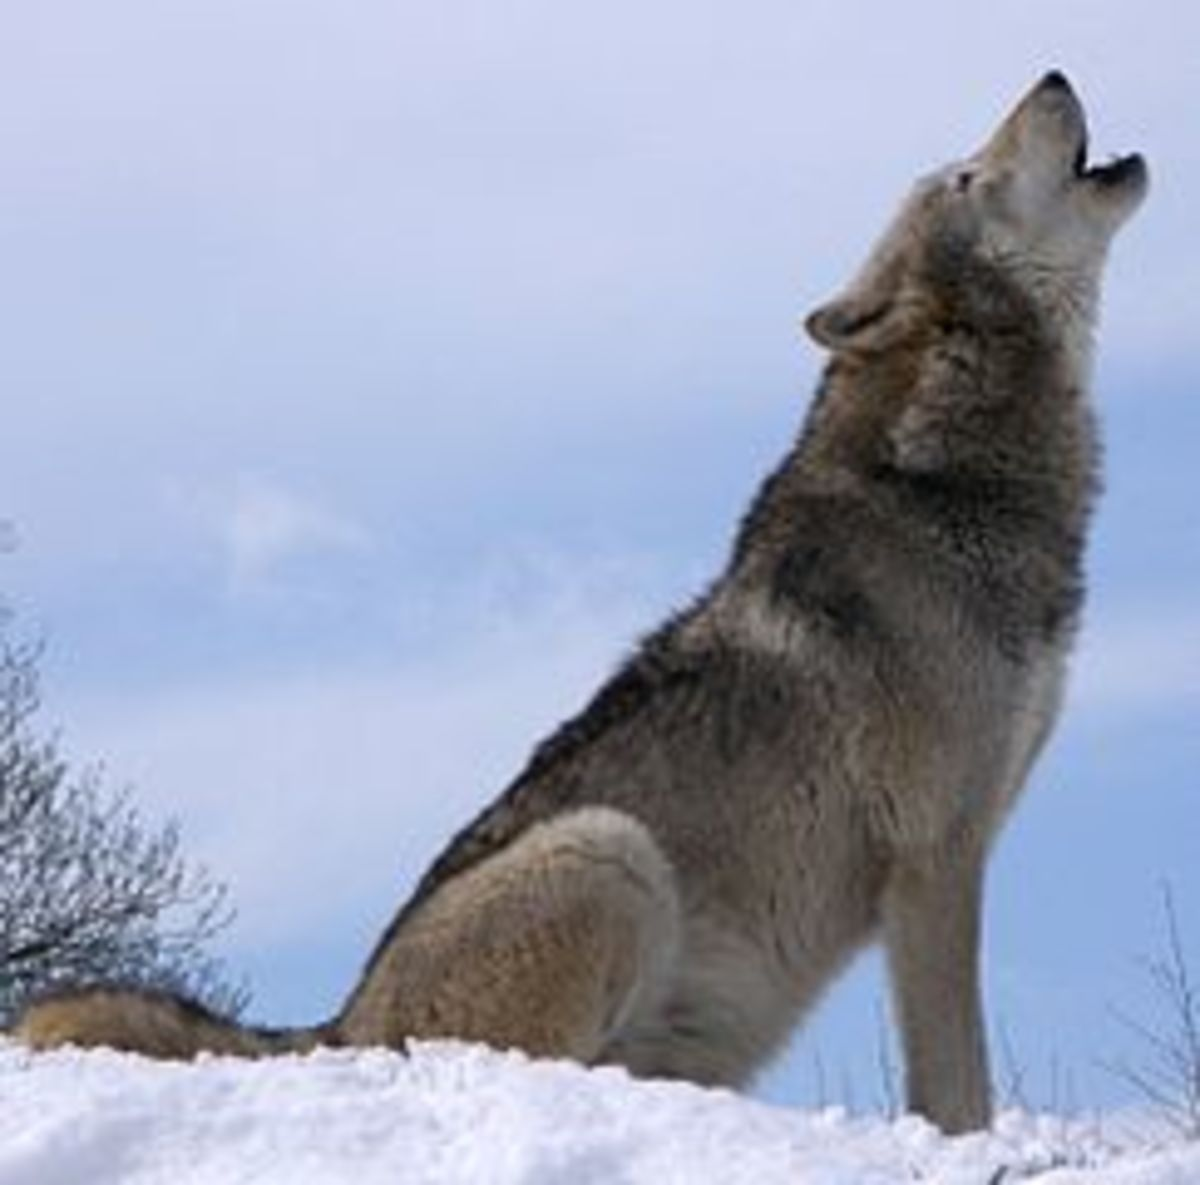 Julie befriended wolves like this grey wolf pictured here.